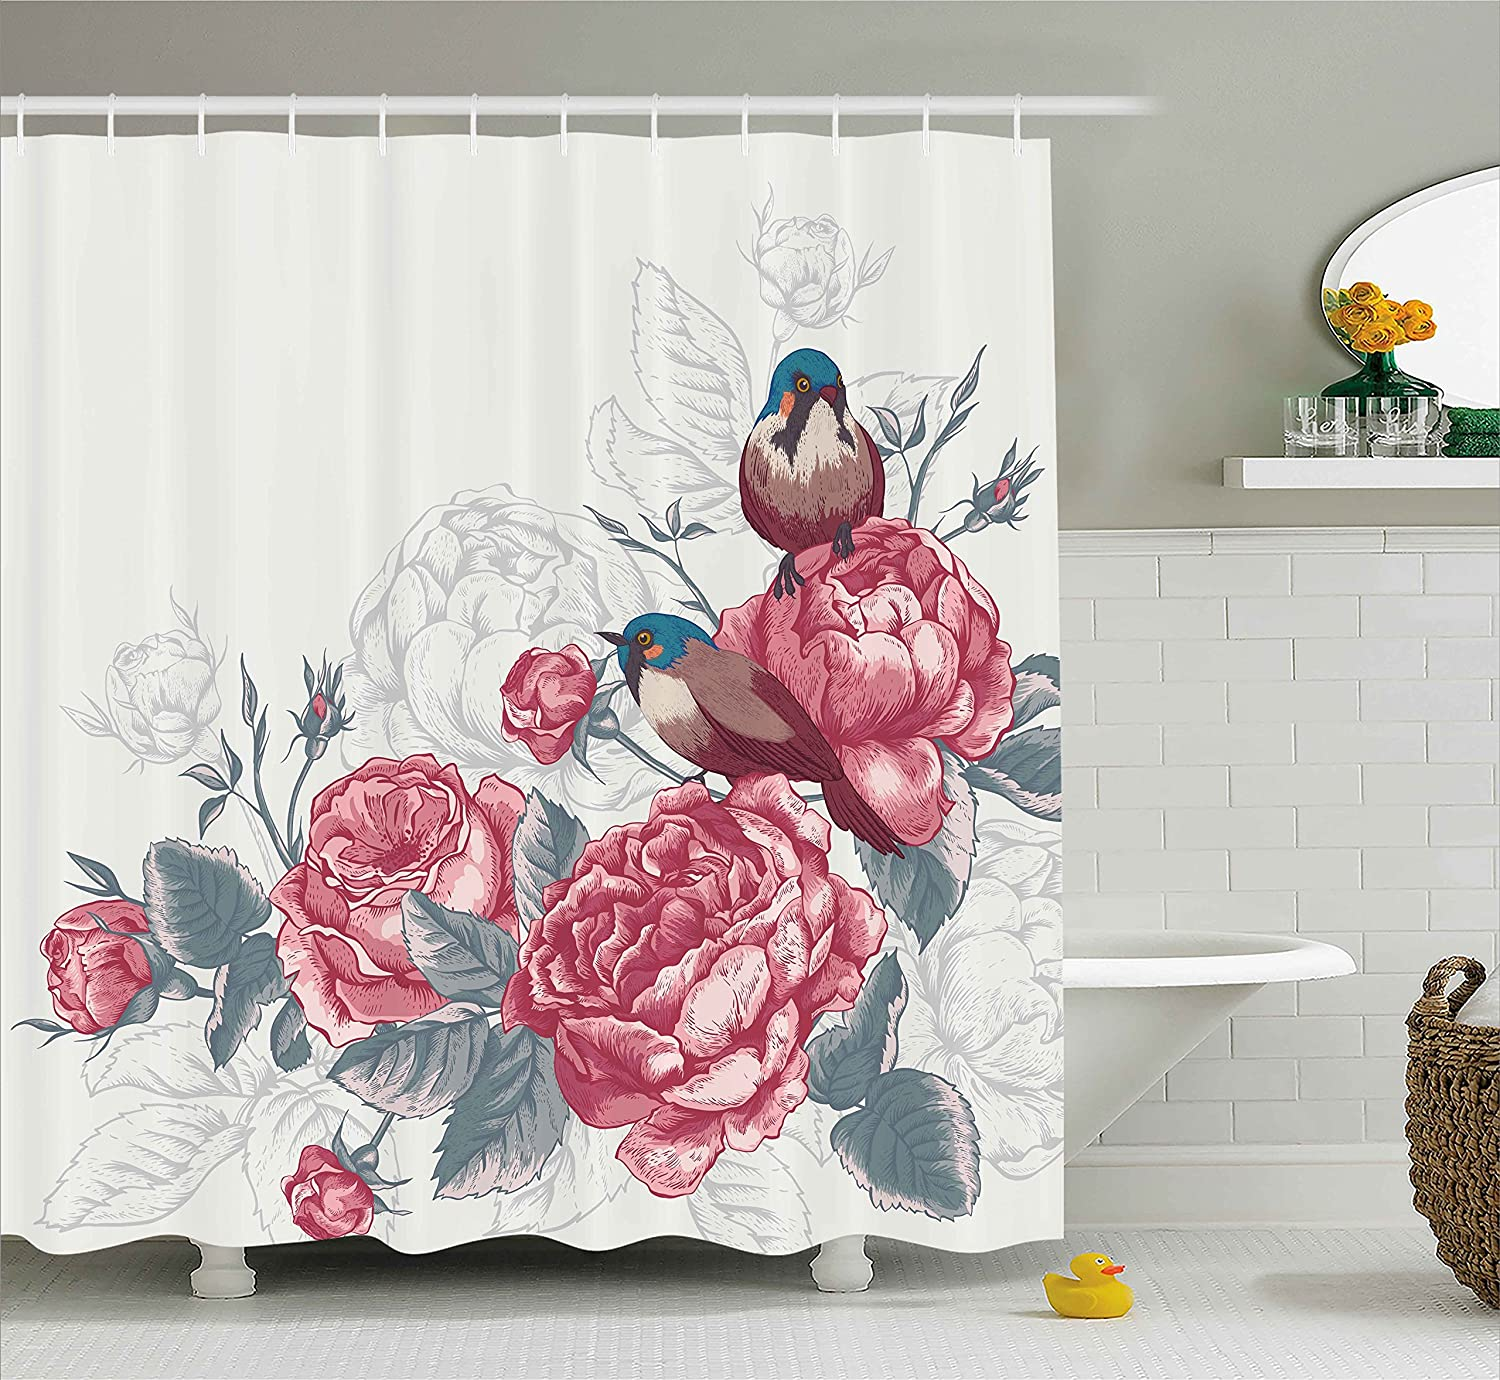 Romantic Shower Curtain By Ambesonne Vintage Country Sparrows Birds With Roses And Leaves Artwork Print Fabric Bathroom Decor Set Hooks 70 Inches